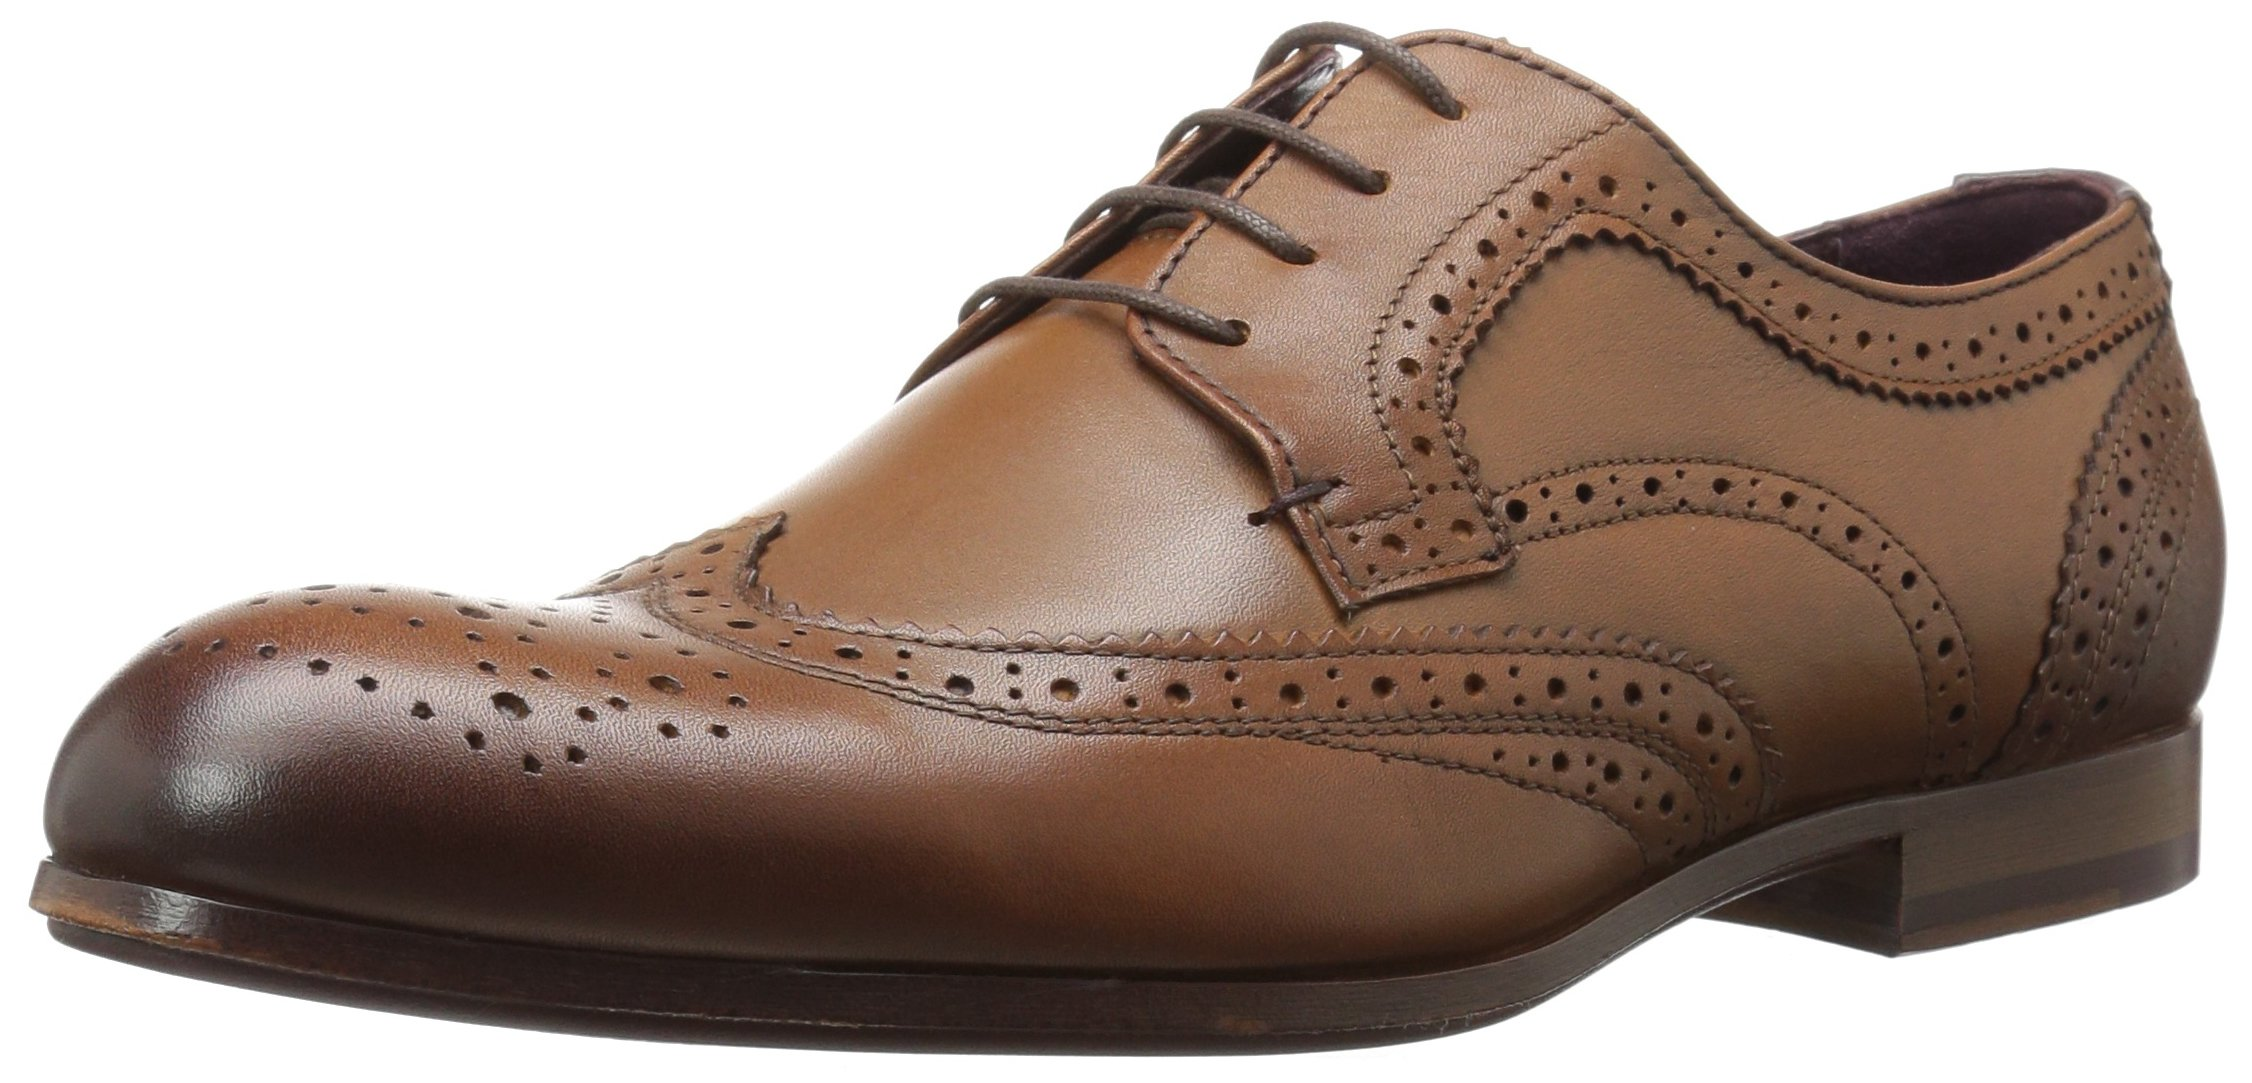 Ted Baker Men's Granet Oxford, Tan, 9 D(M) US